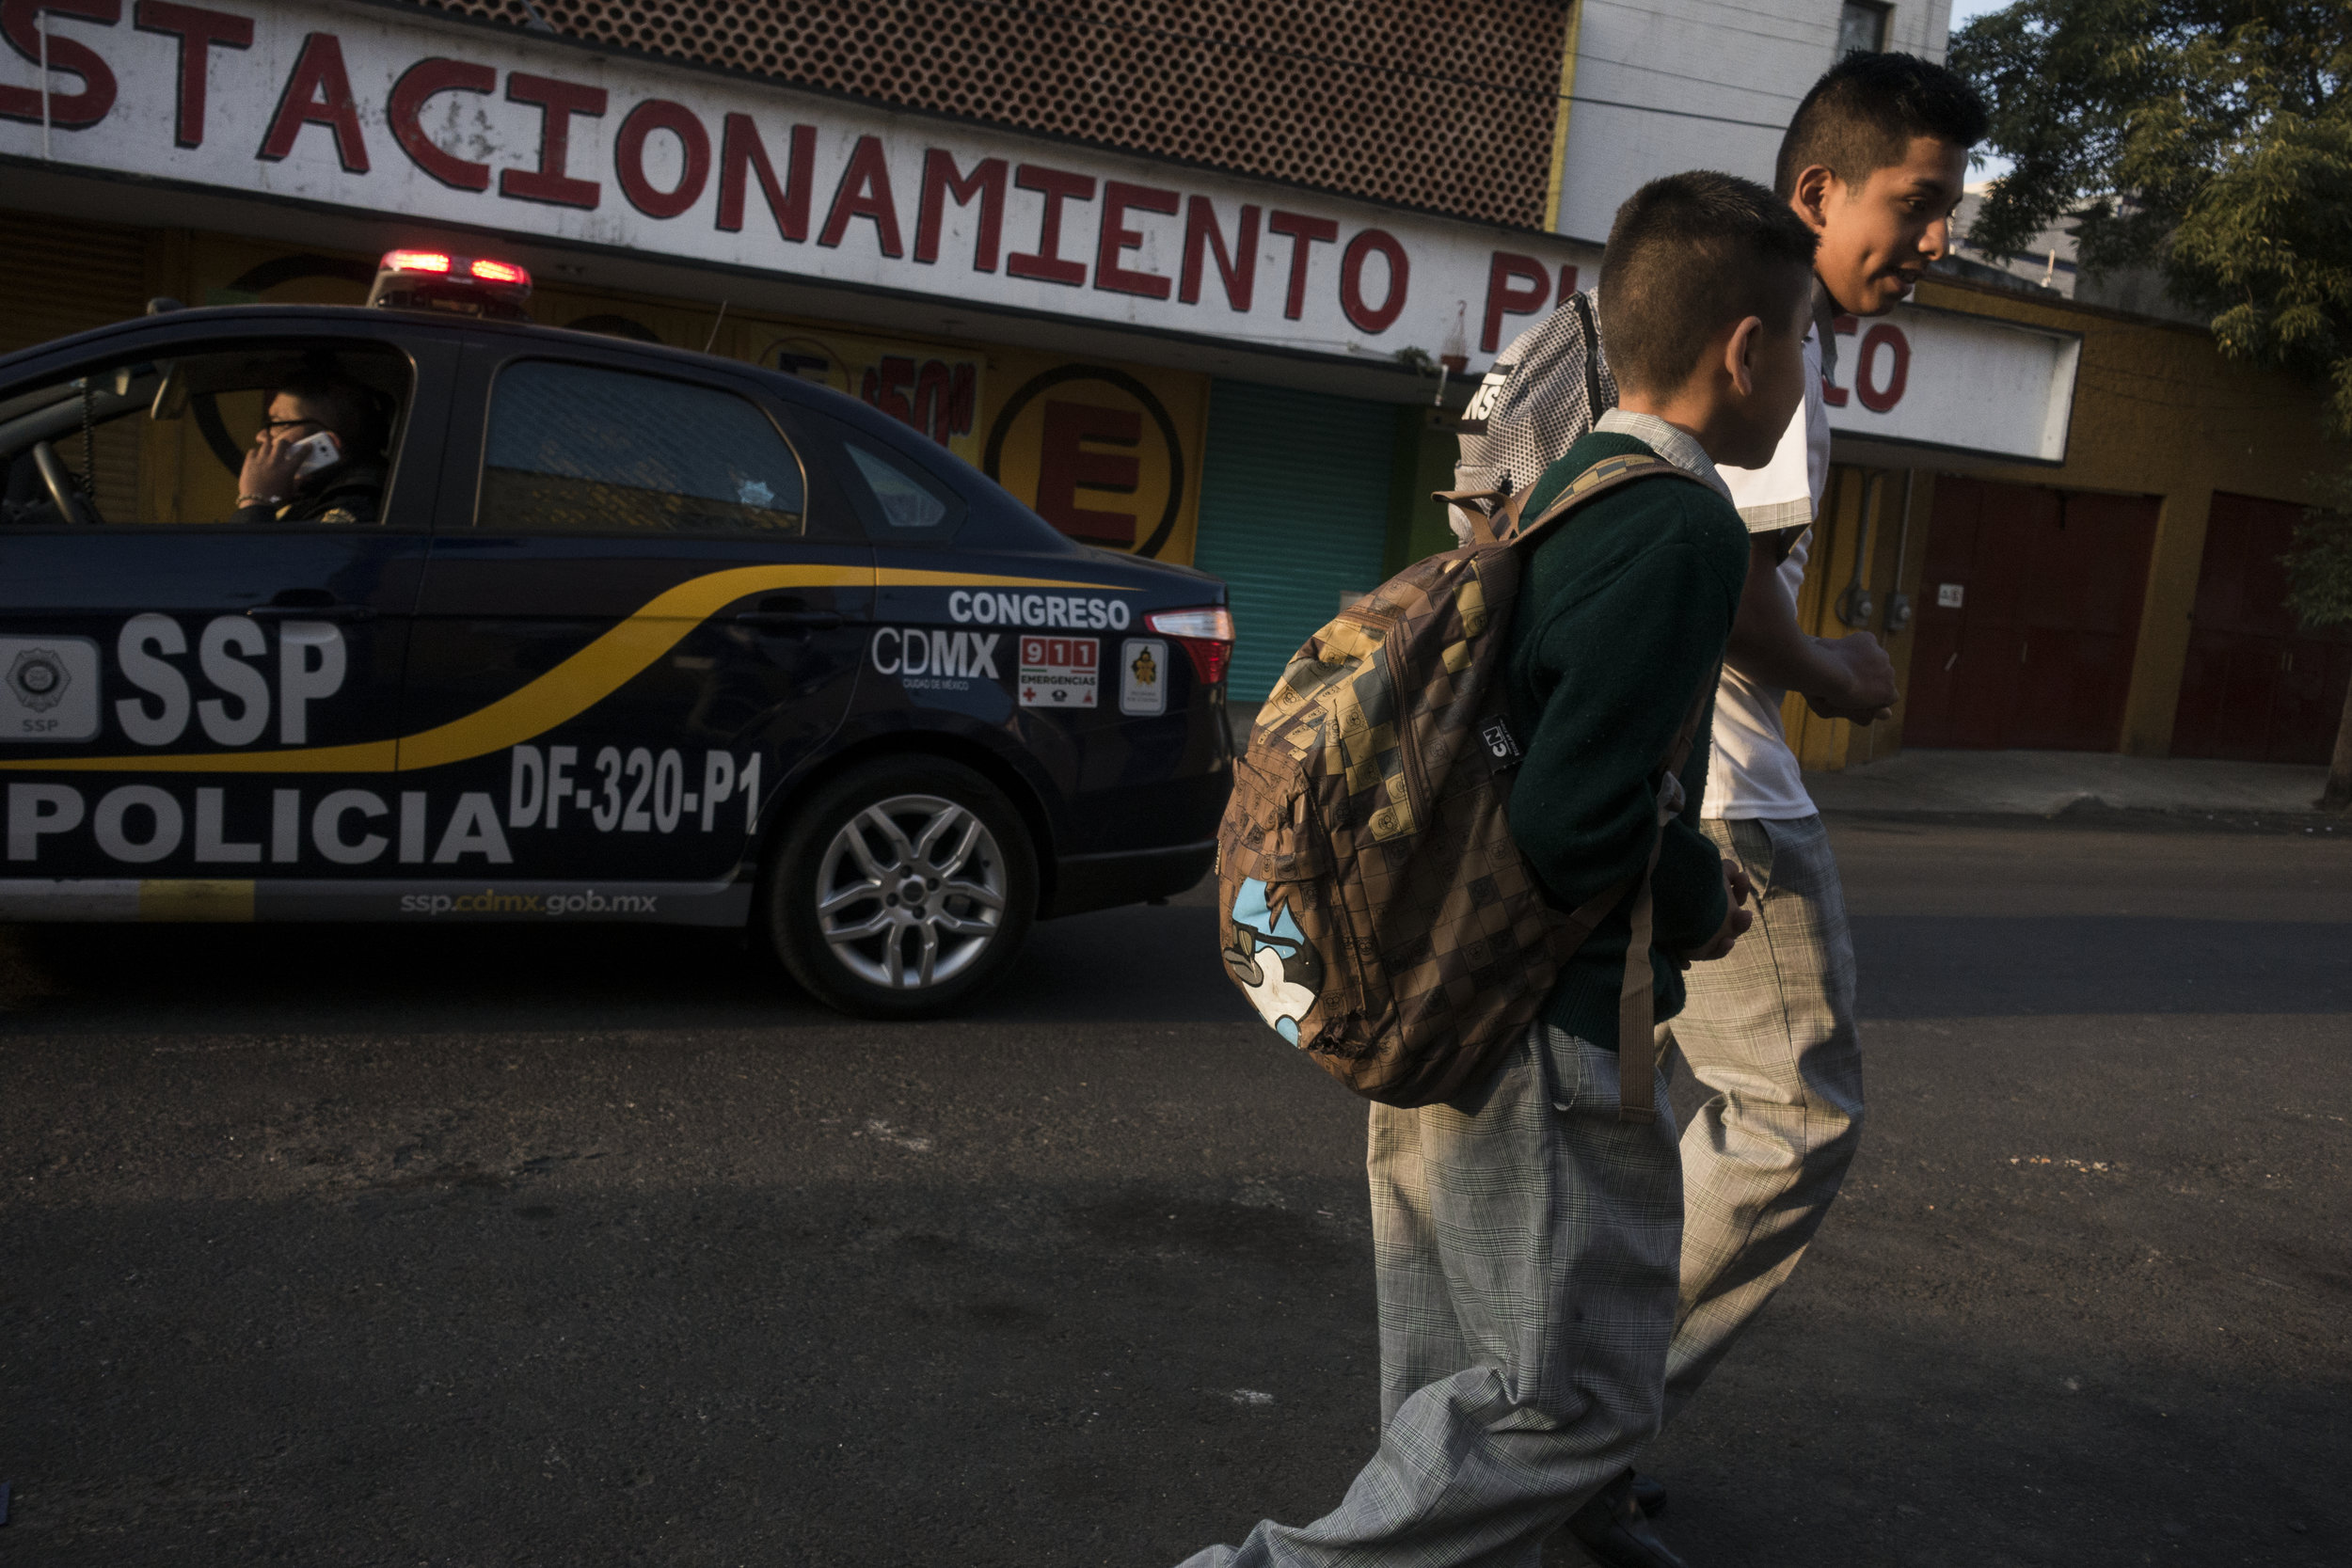 """When asked about his neighborhood Pancho's typically cheery demeanor gets becomes more somber.""""It's really nasty. They'll kill you for whatever thing. It makes me afraid,"""" he says. """"I don't want to die so young, I want to continue living."""""""